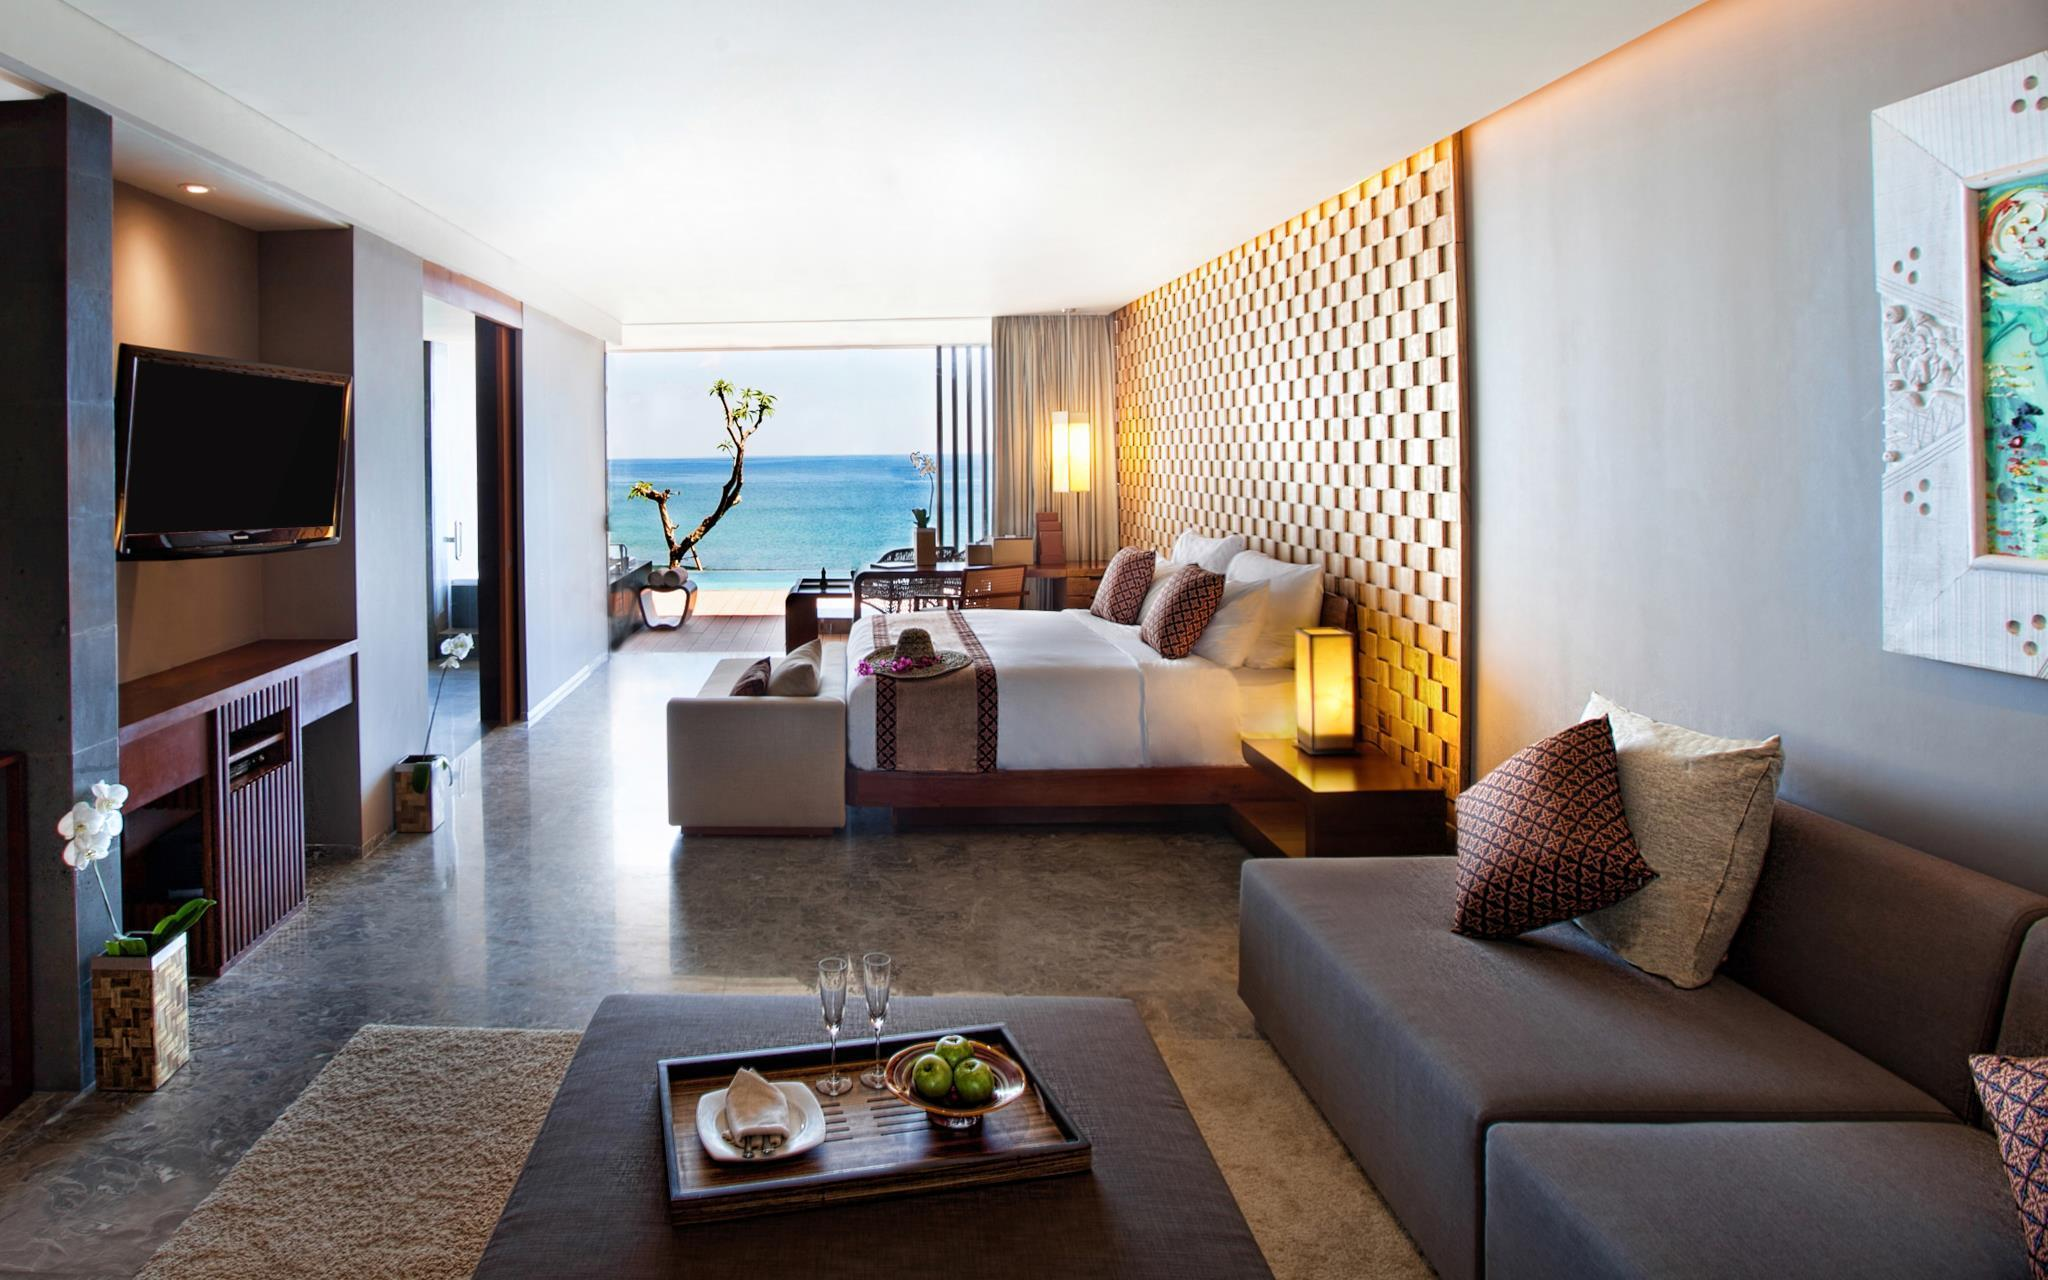 Suite am Meer mit Pool (Oceanfront Suite with Pool)